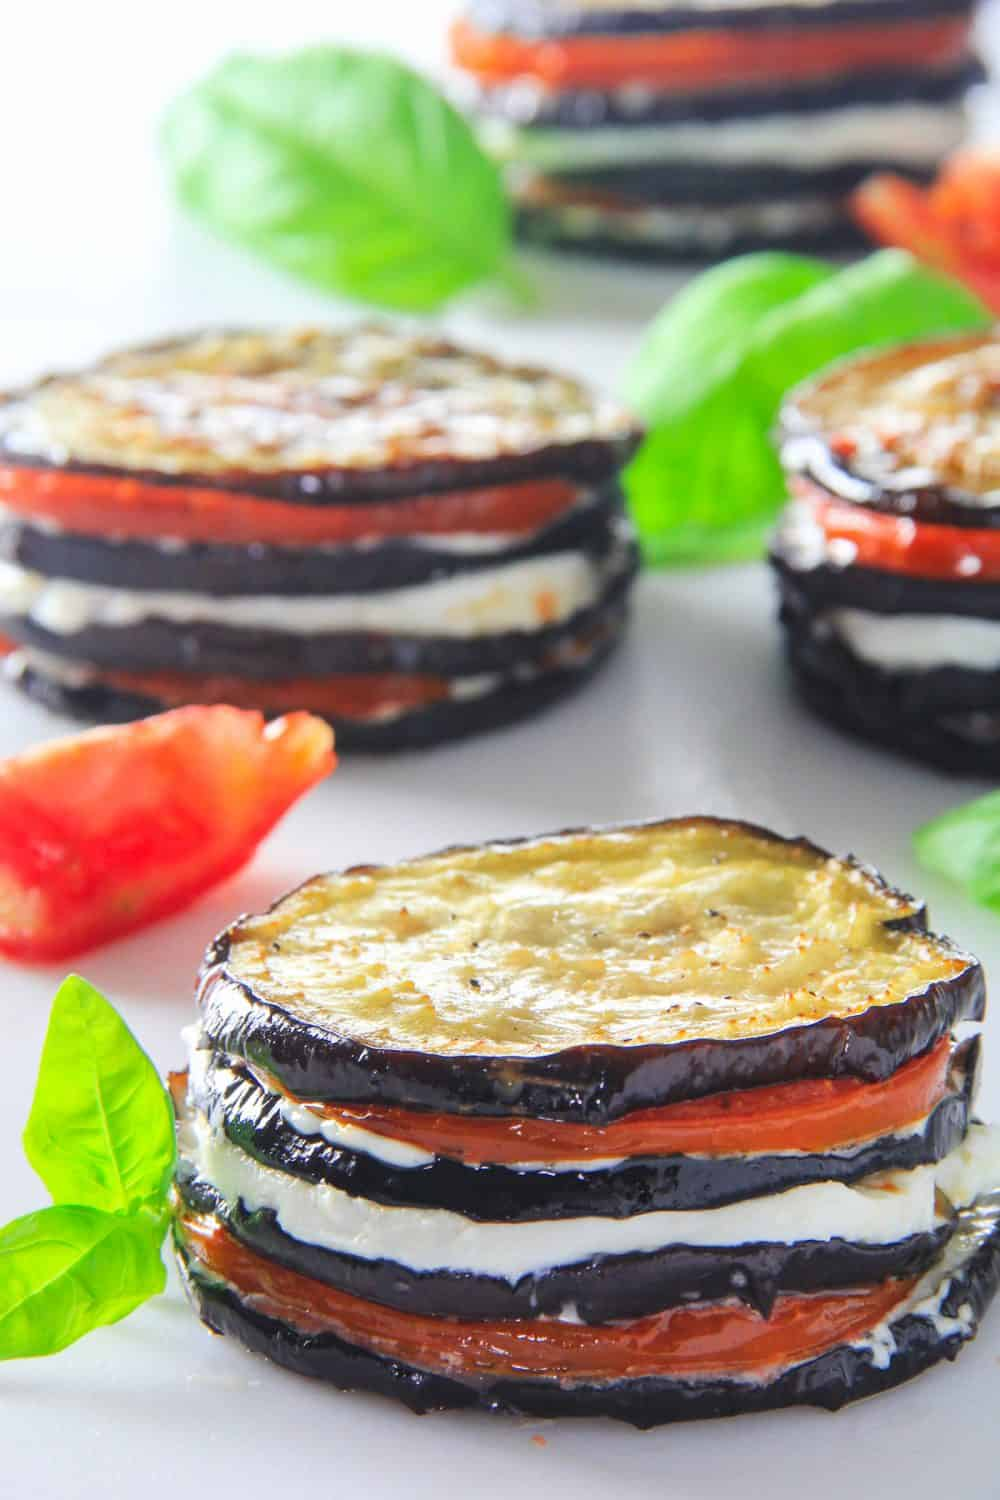 eggplant napoleon stacked with slices eggplant, sliced tomato, and sliced mozzarella cheese. with basil beside it